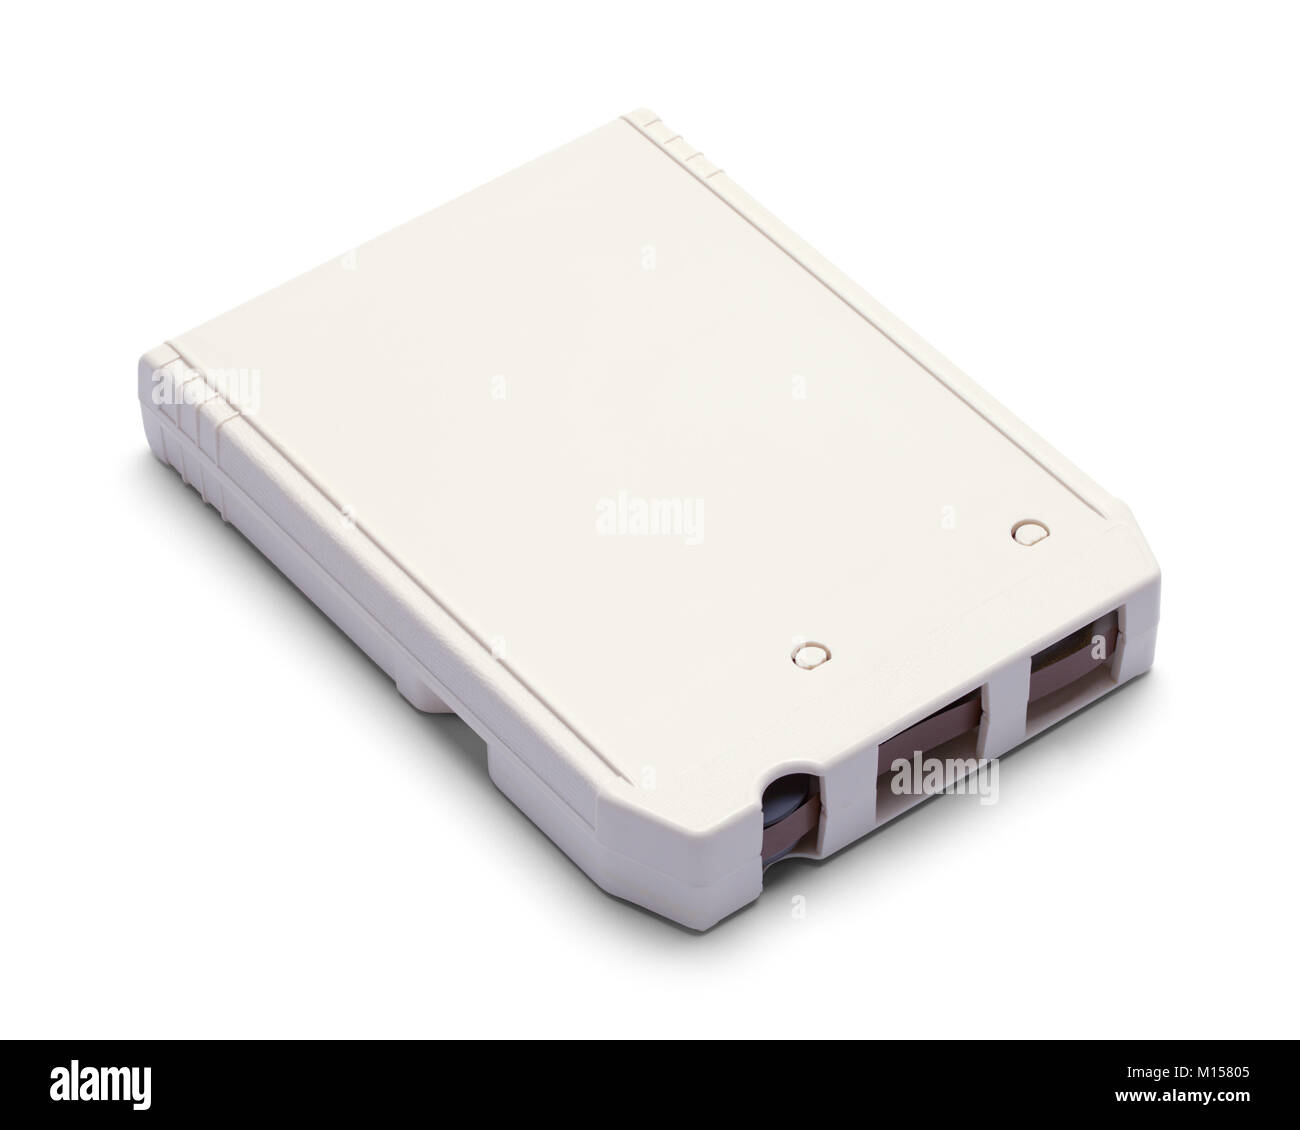 White Eight Track Cassette Tape Isolated on a White Background. - Stock Image